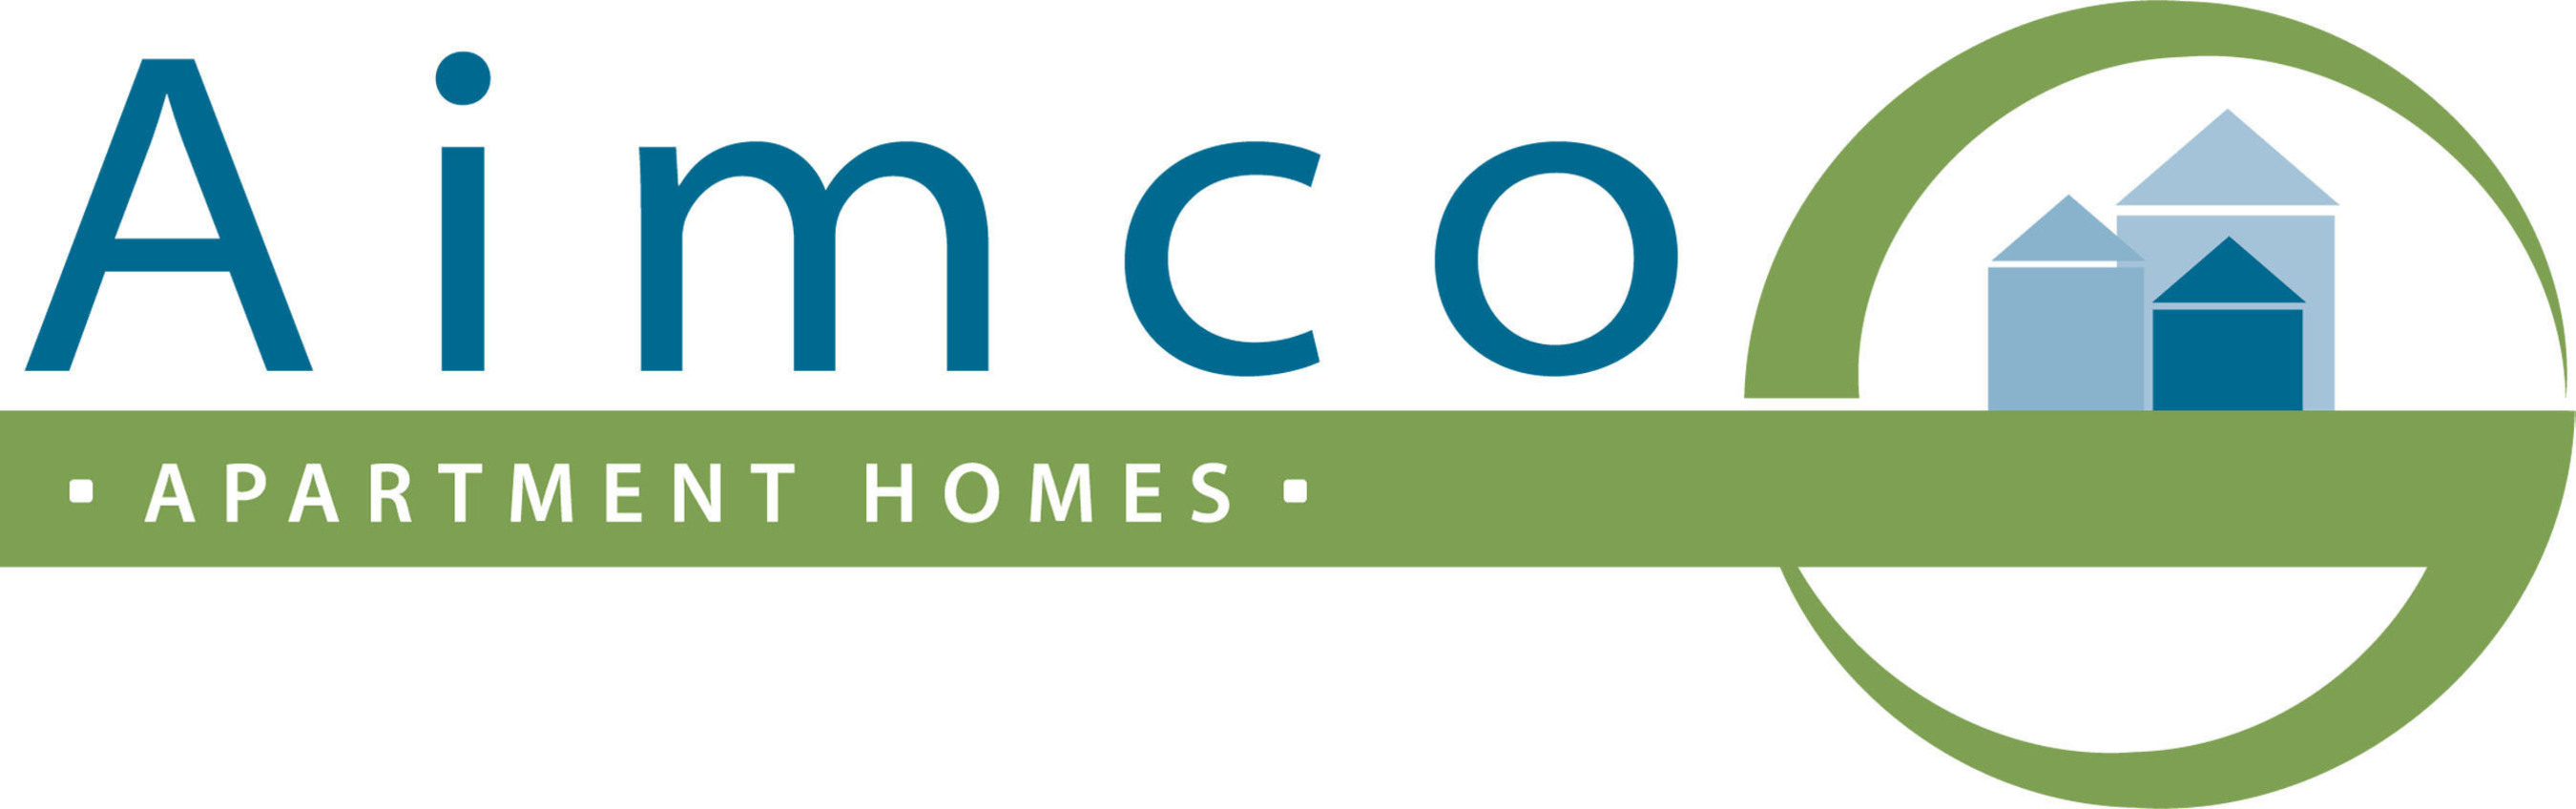 Apartment Investment & Management Co. (Aimco) Logo